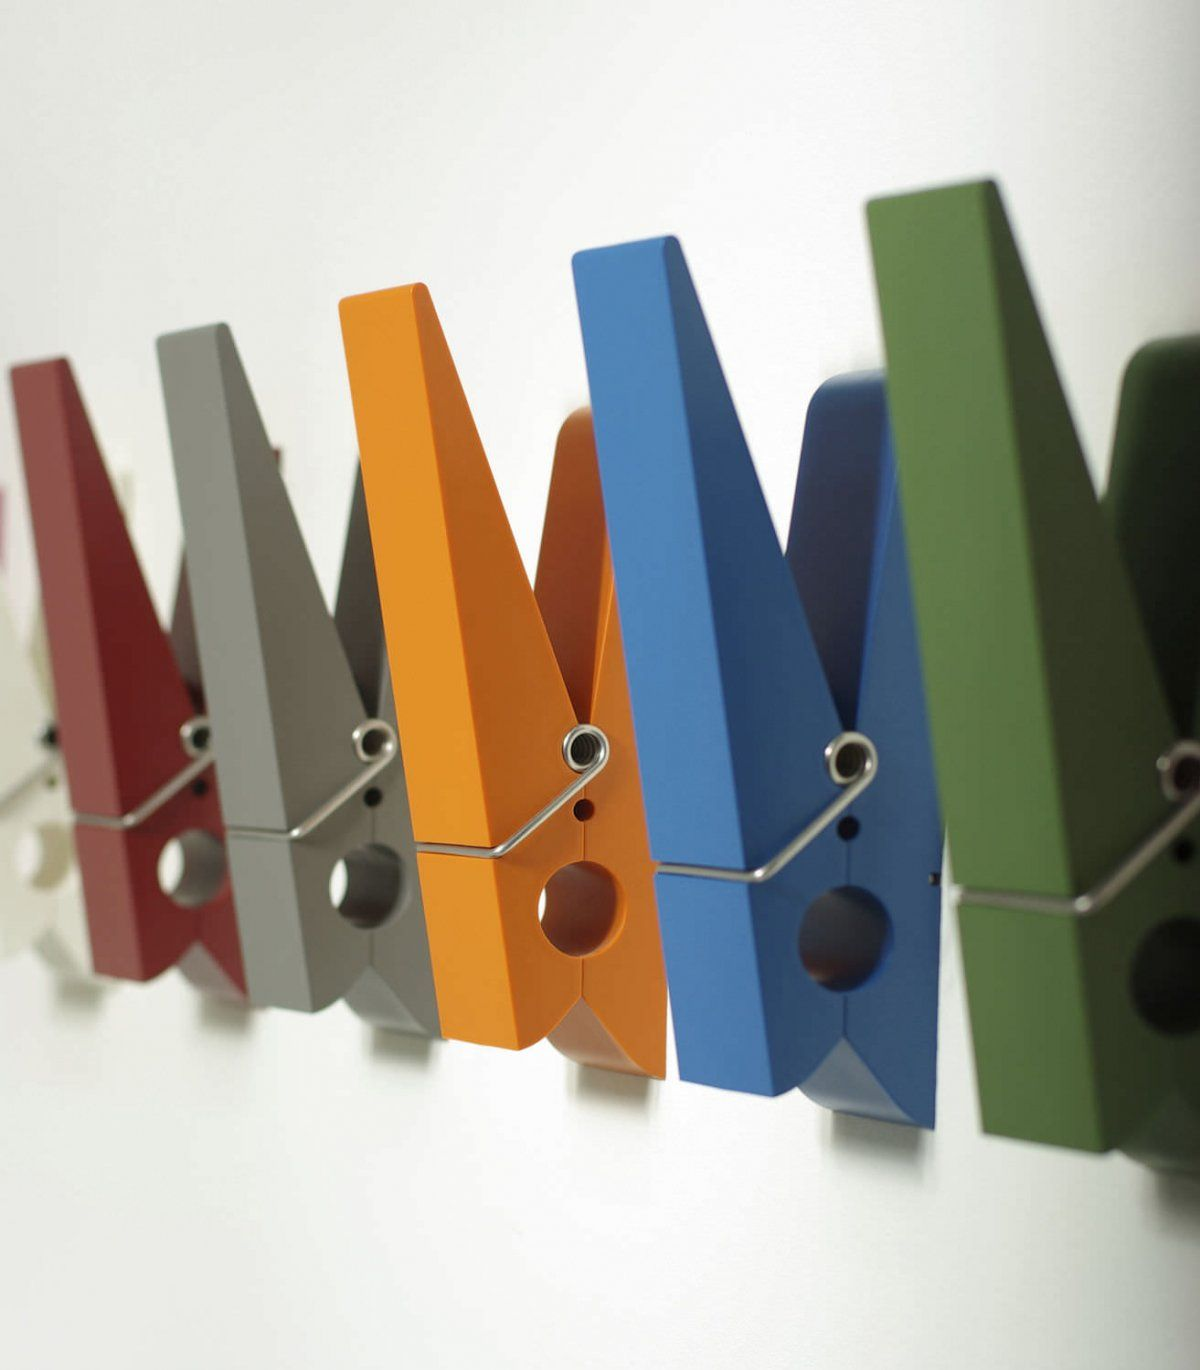 unique wall mounted coat racks funky - Funky Coat Racks